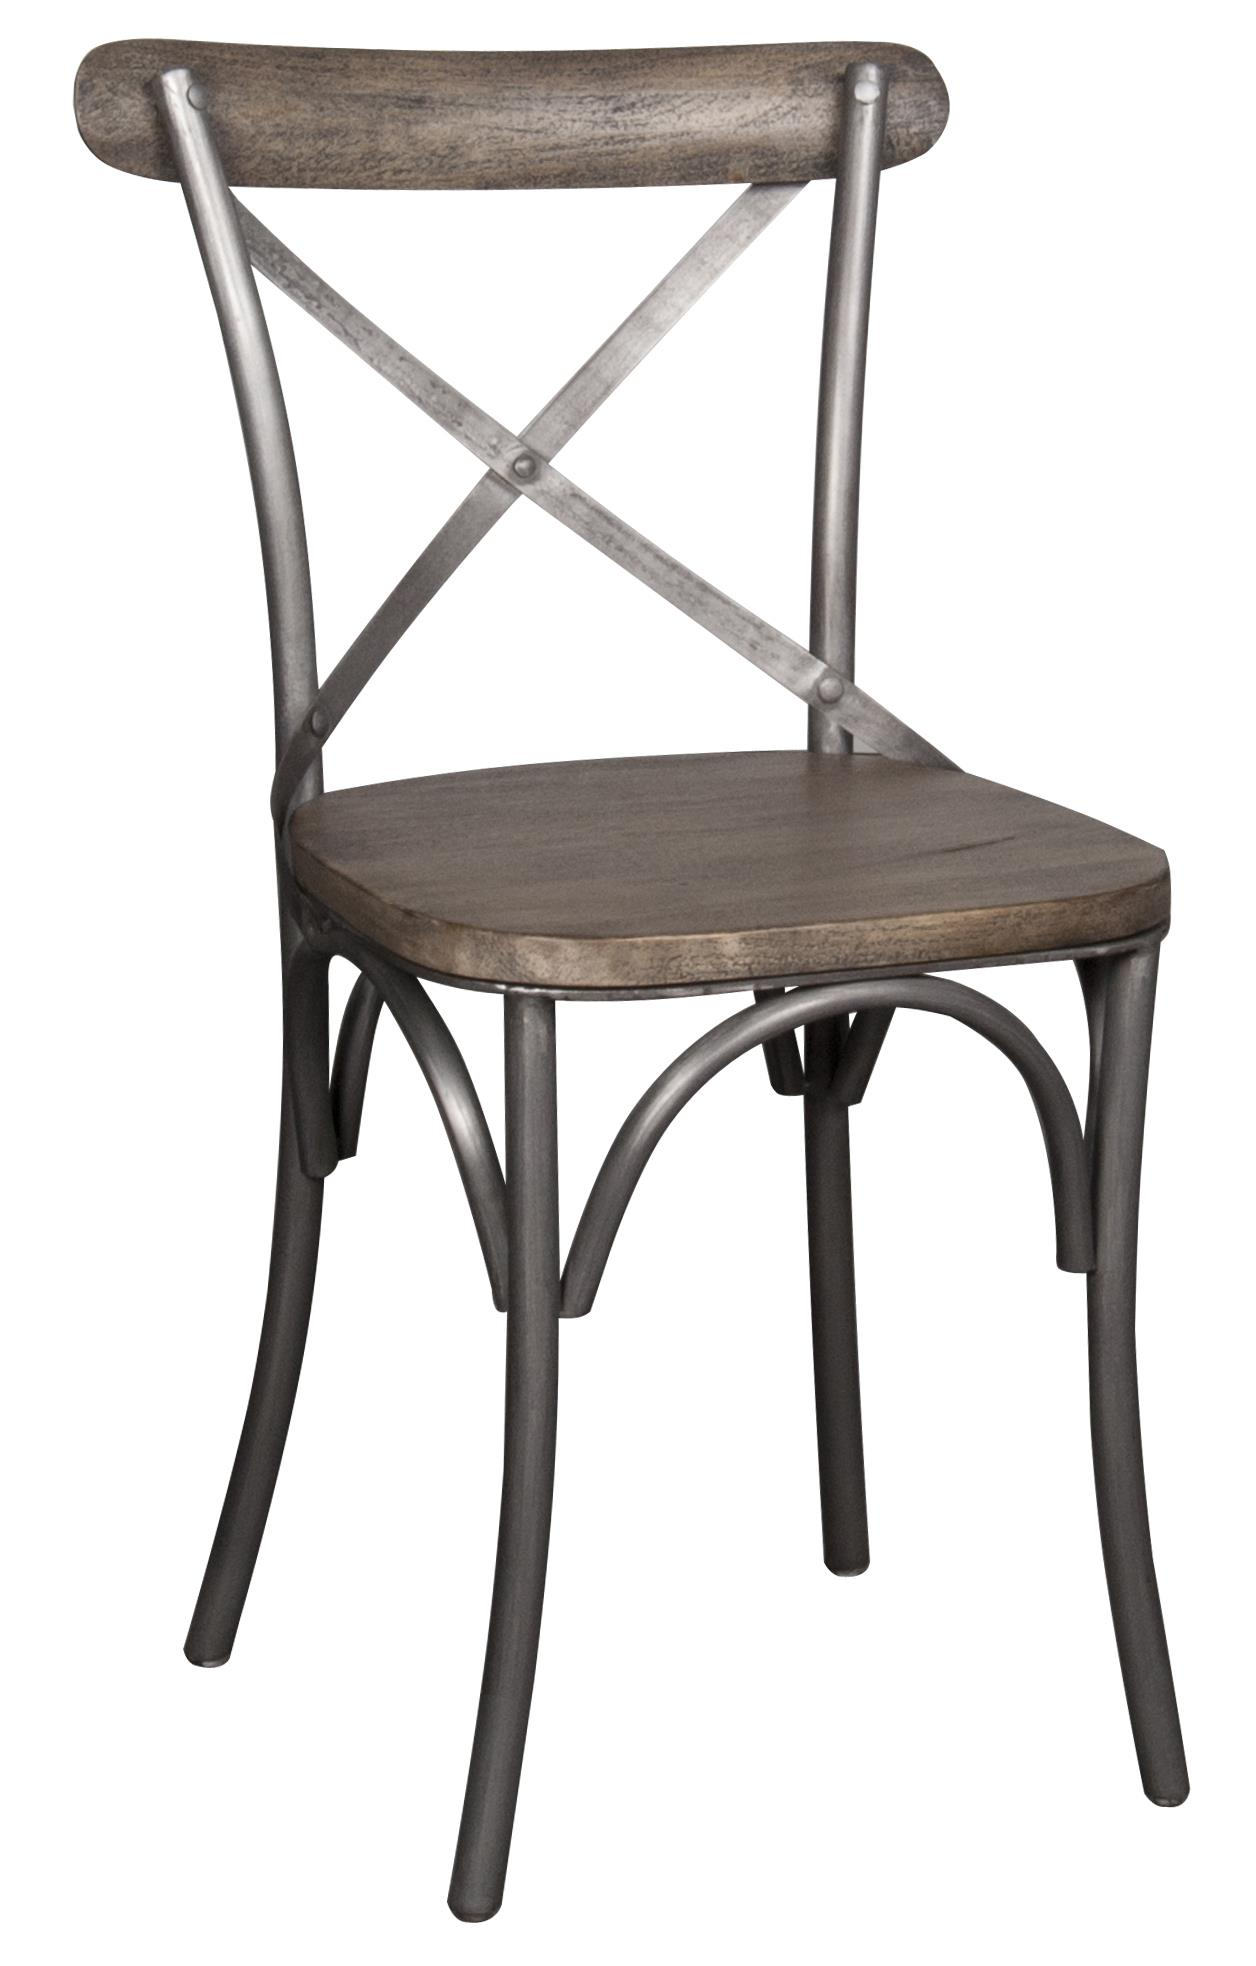 Morris Home Furnishings Lorient Dining Side Chair - Item Number: 5676-802